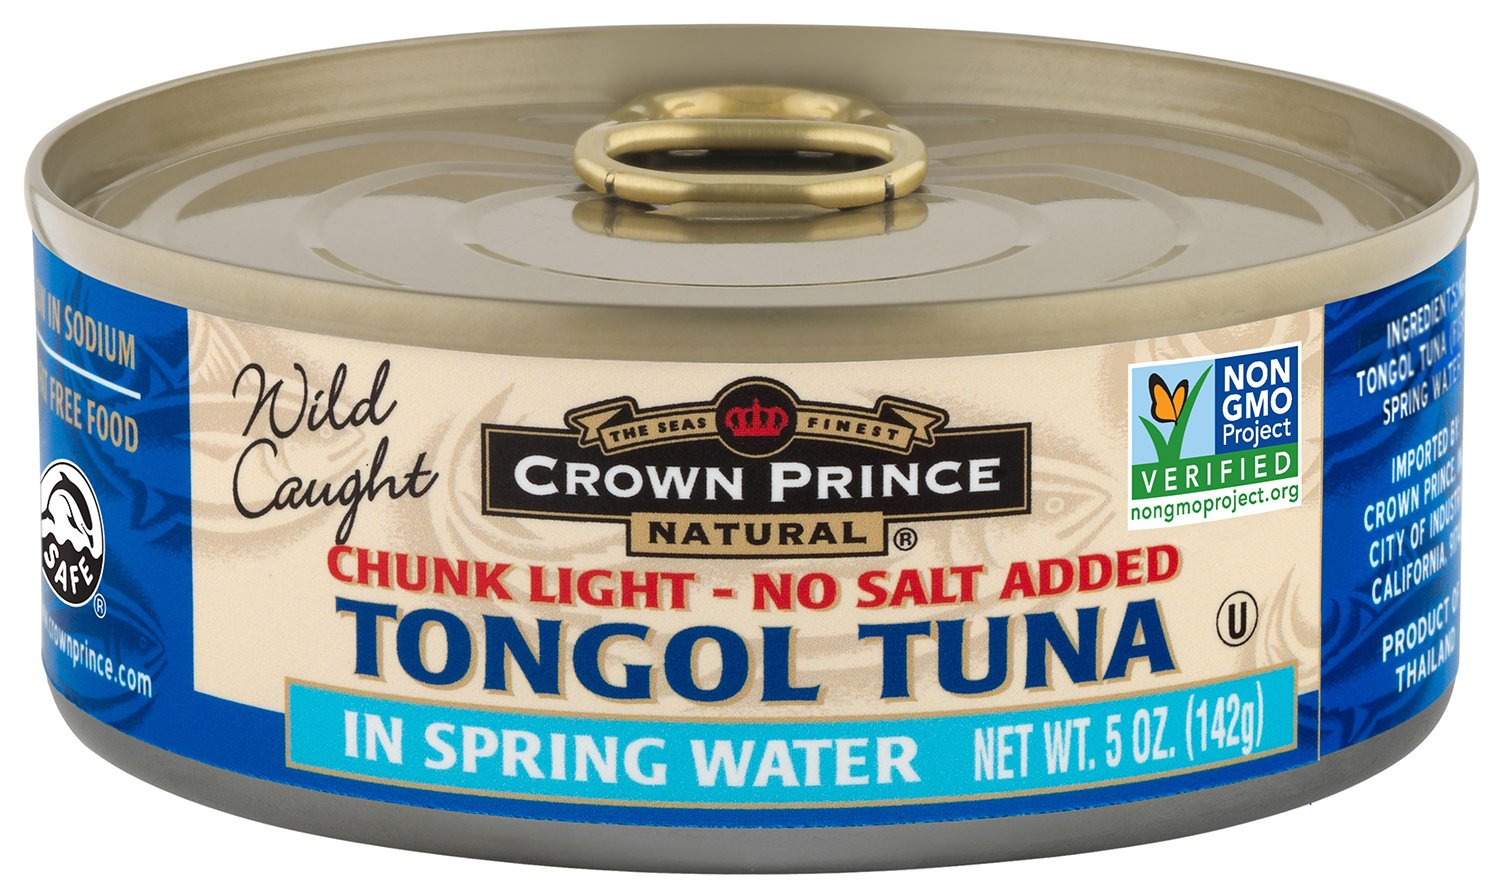 Crown Prince Chunk Light Tongol Tuna Review